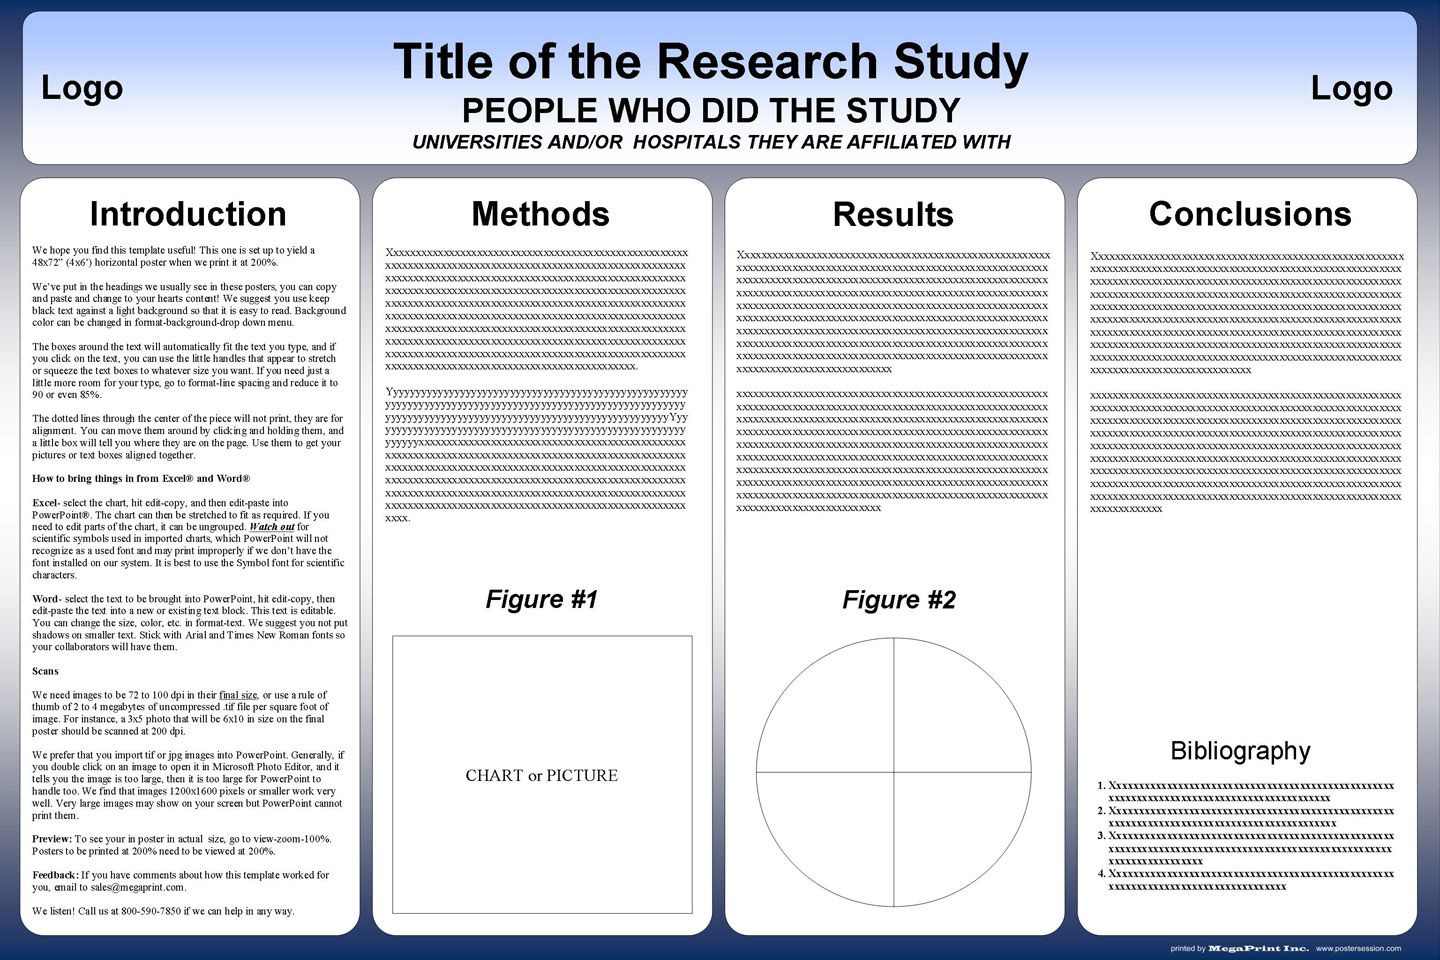 002 Awesome Scientific Poster Design Template Free Download Full